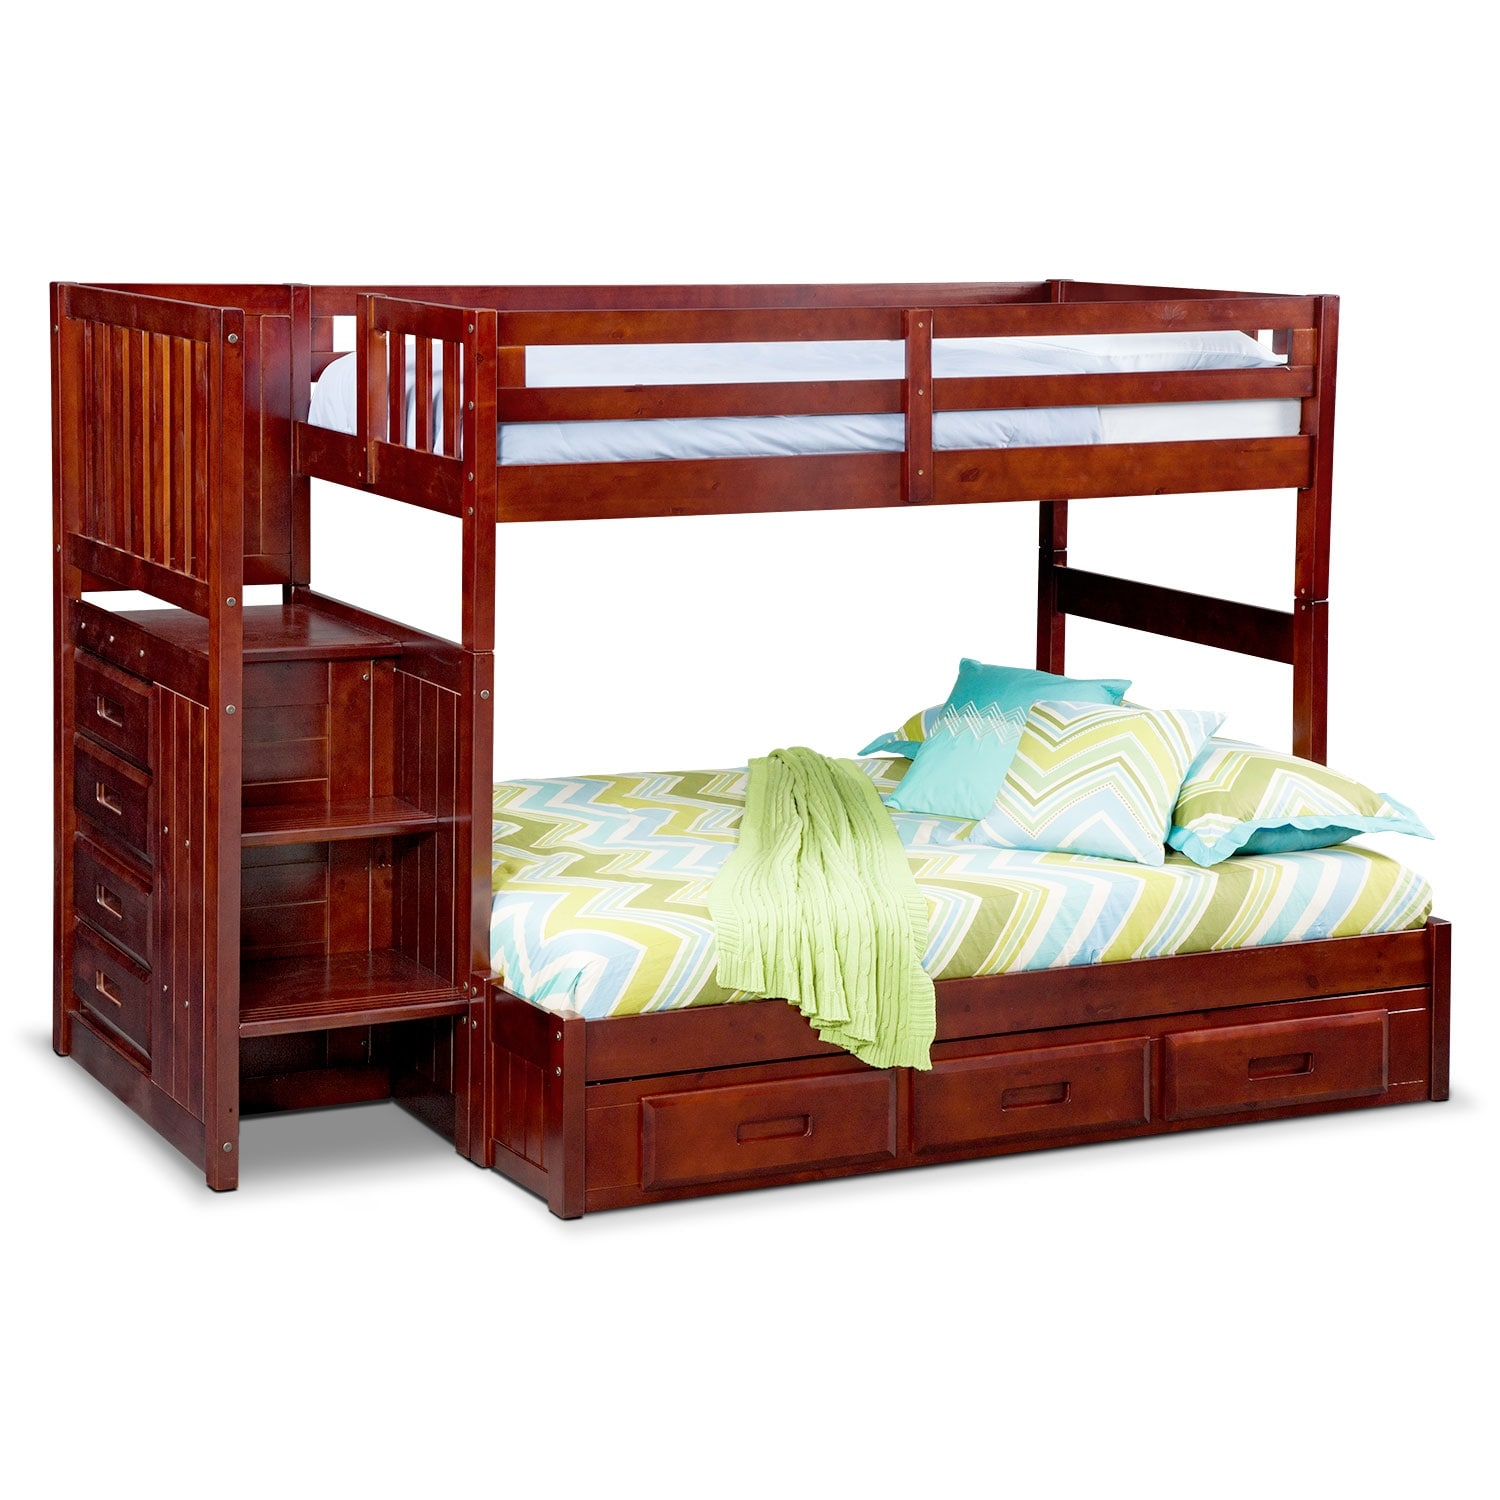 Ranger twin over full bunk bed with storage stairs underbed drawers merlot american - Kids twin beds with storage drawers ...